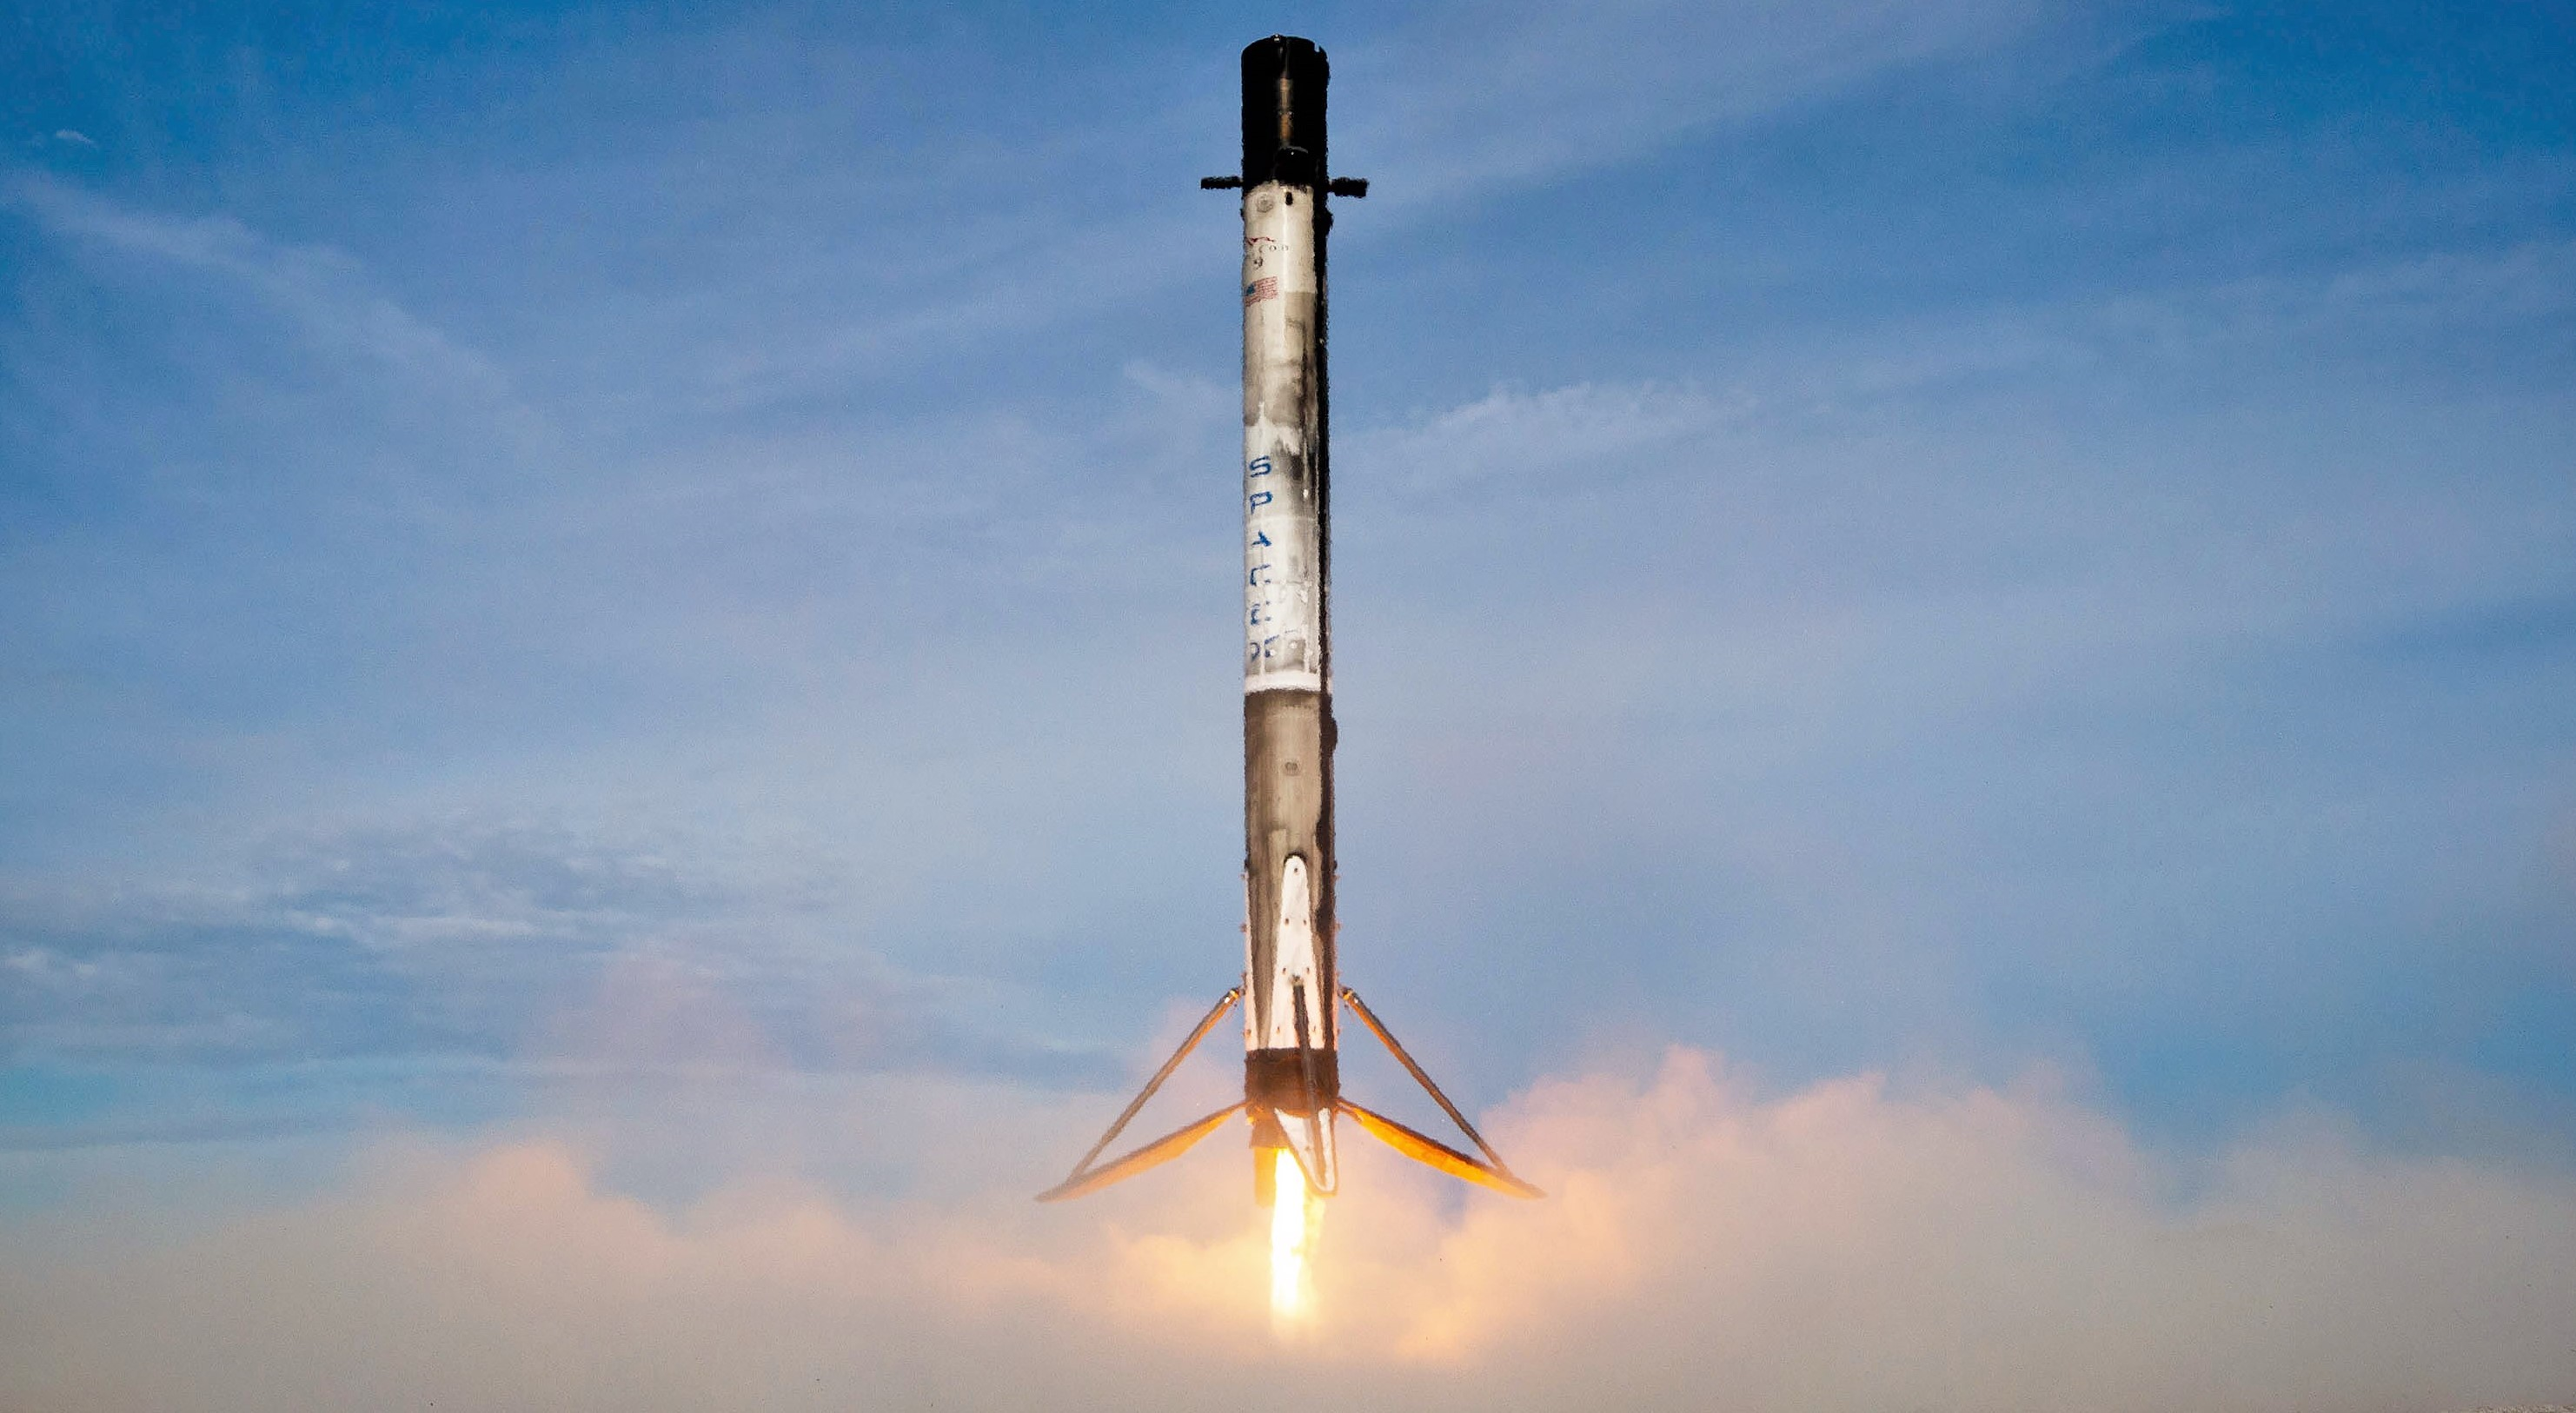 Pictured landing in July 2019 after its second launch, Falcon 9 booster B1056 - now on its fourth launch - is set to break a crucial reusability record. (SpaceX)